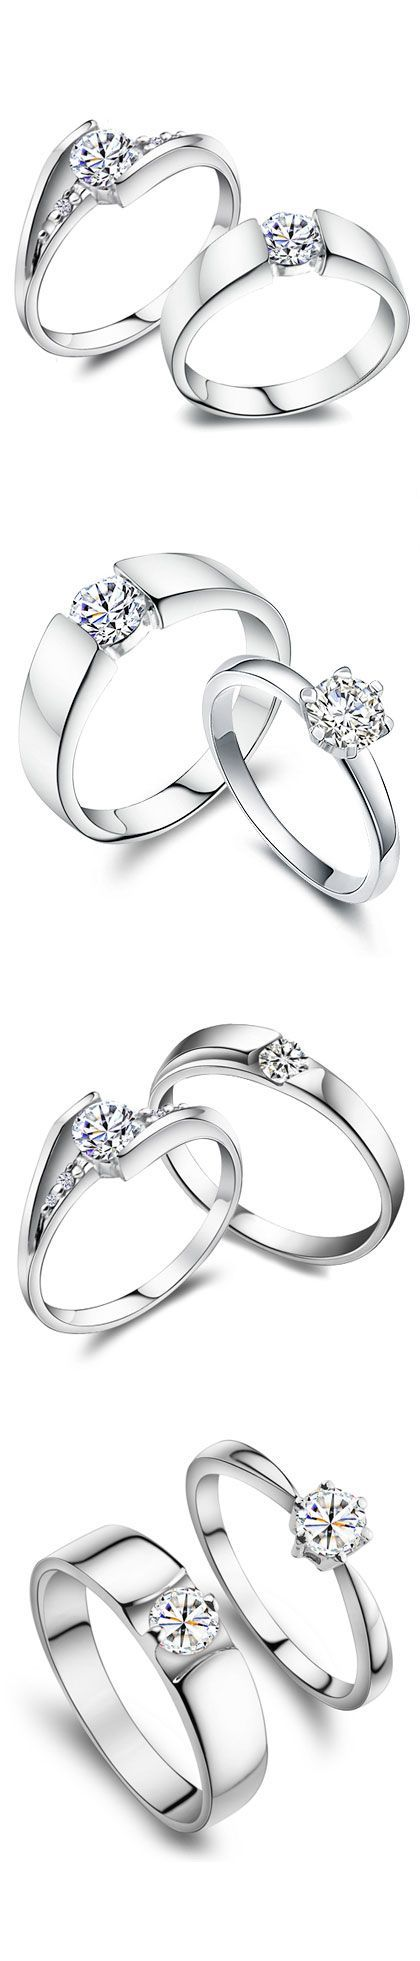 Best 25+ Couples promise rings ideas on Pinterest | Promise rings ...